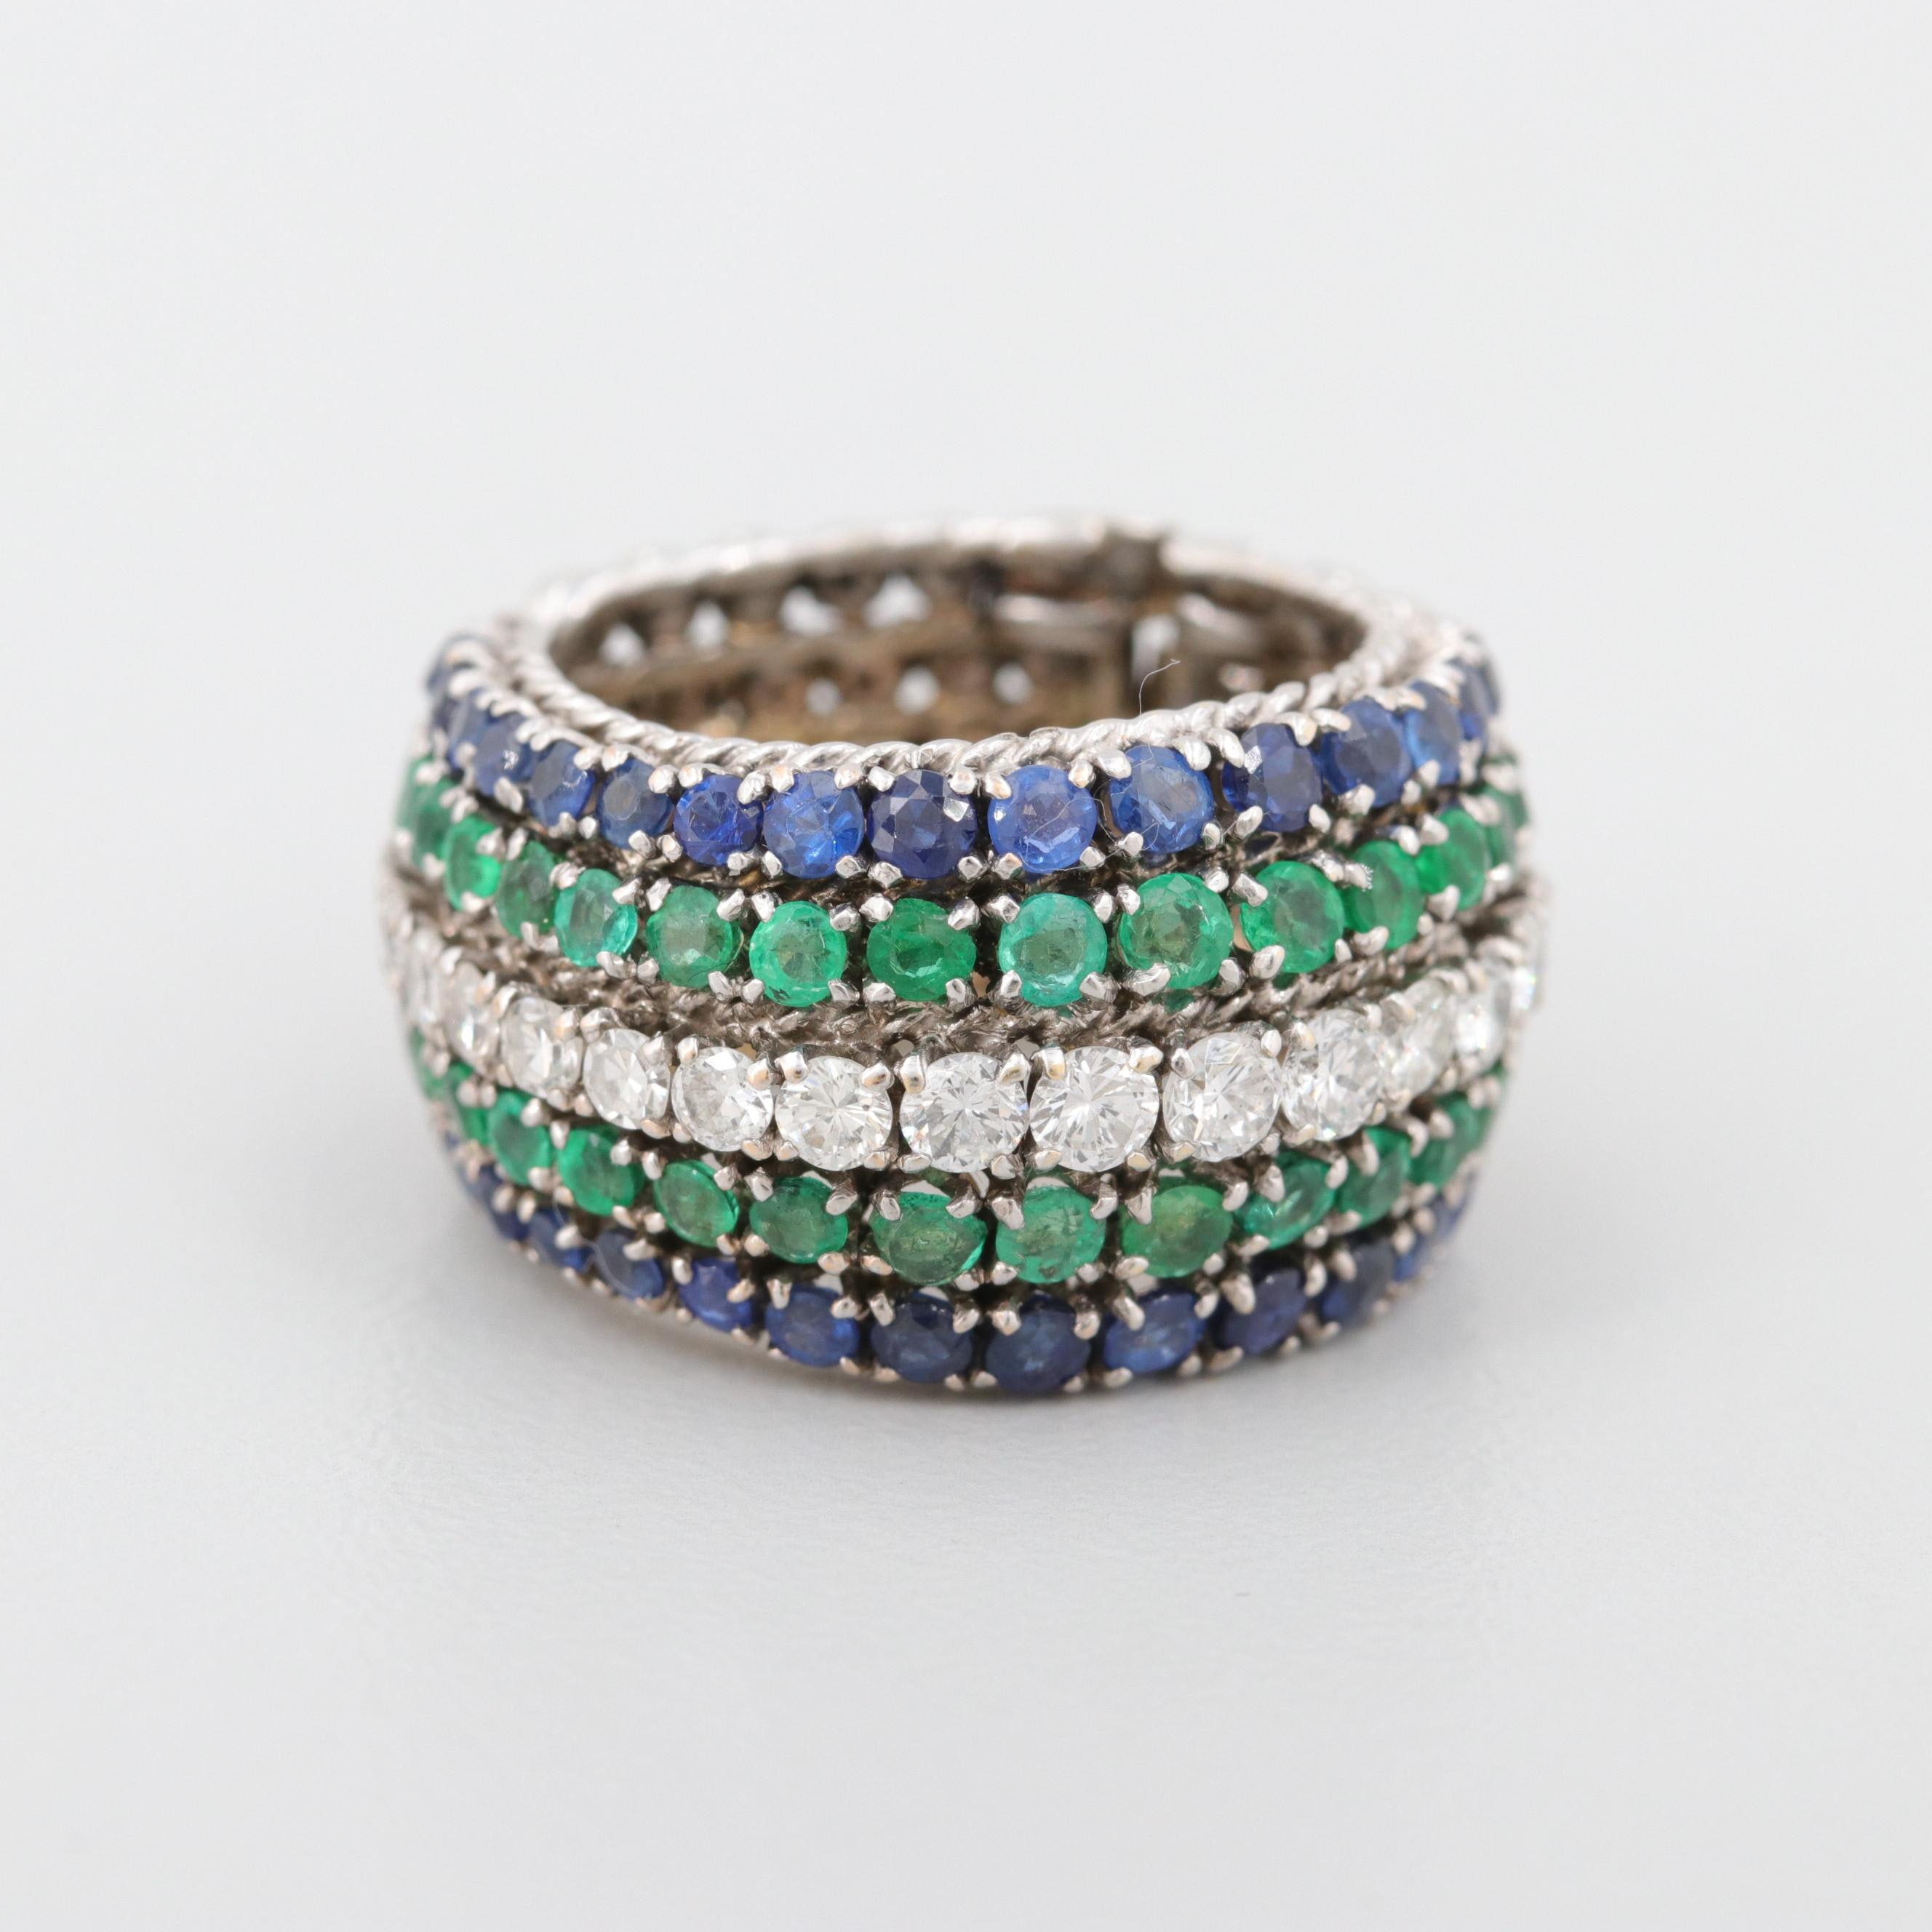 18K White Gold Diamond, Emerald and Sapphire Ring